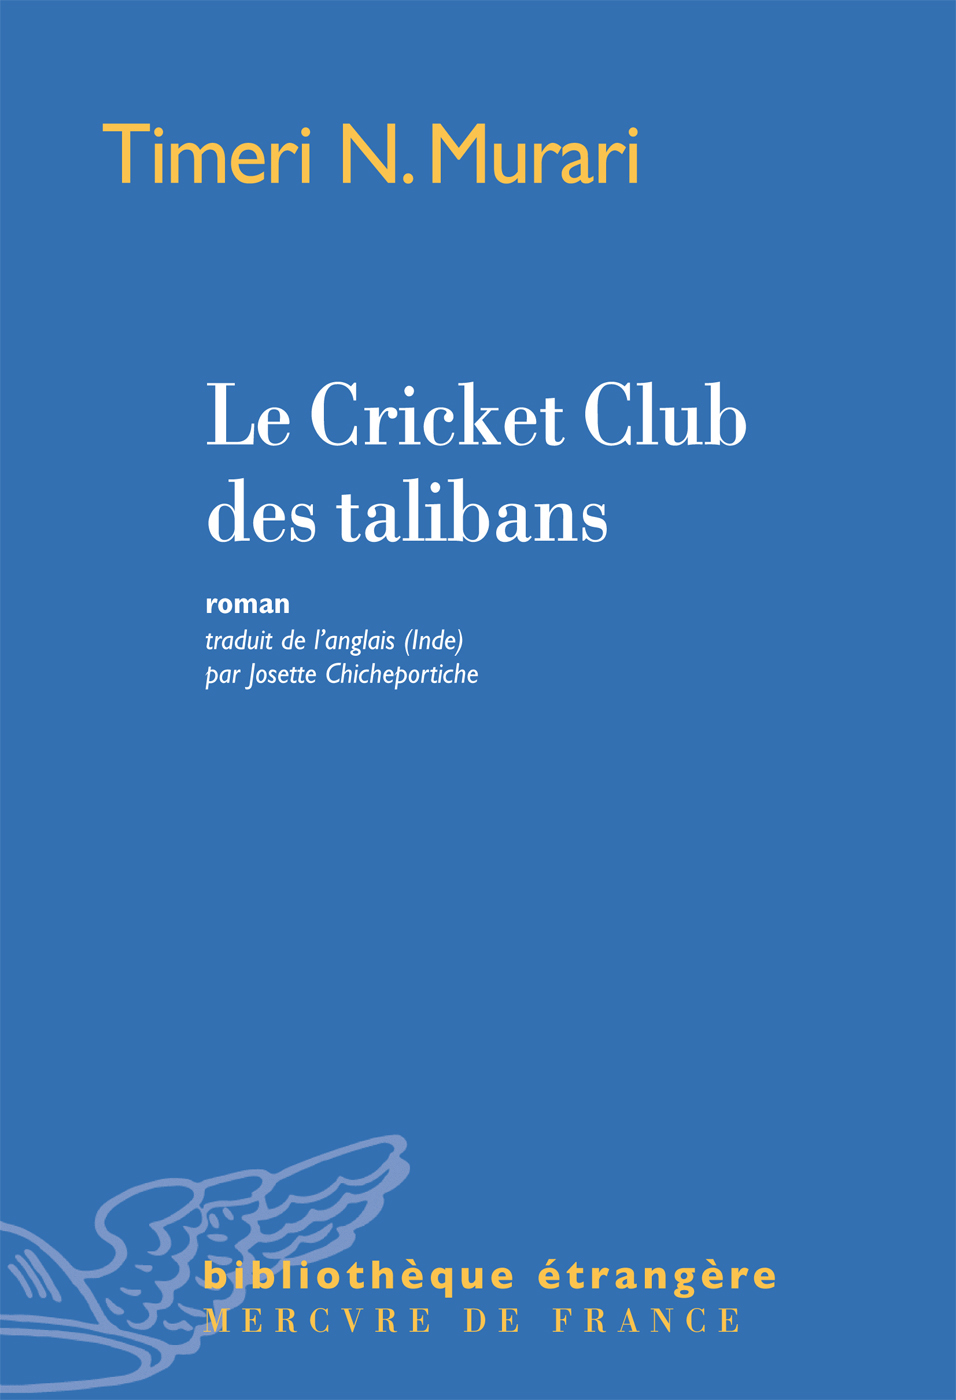 Le Cricket Club des talibans